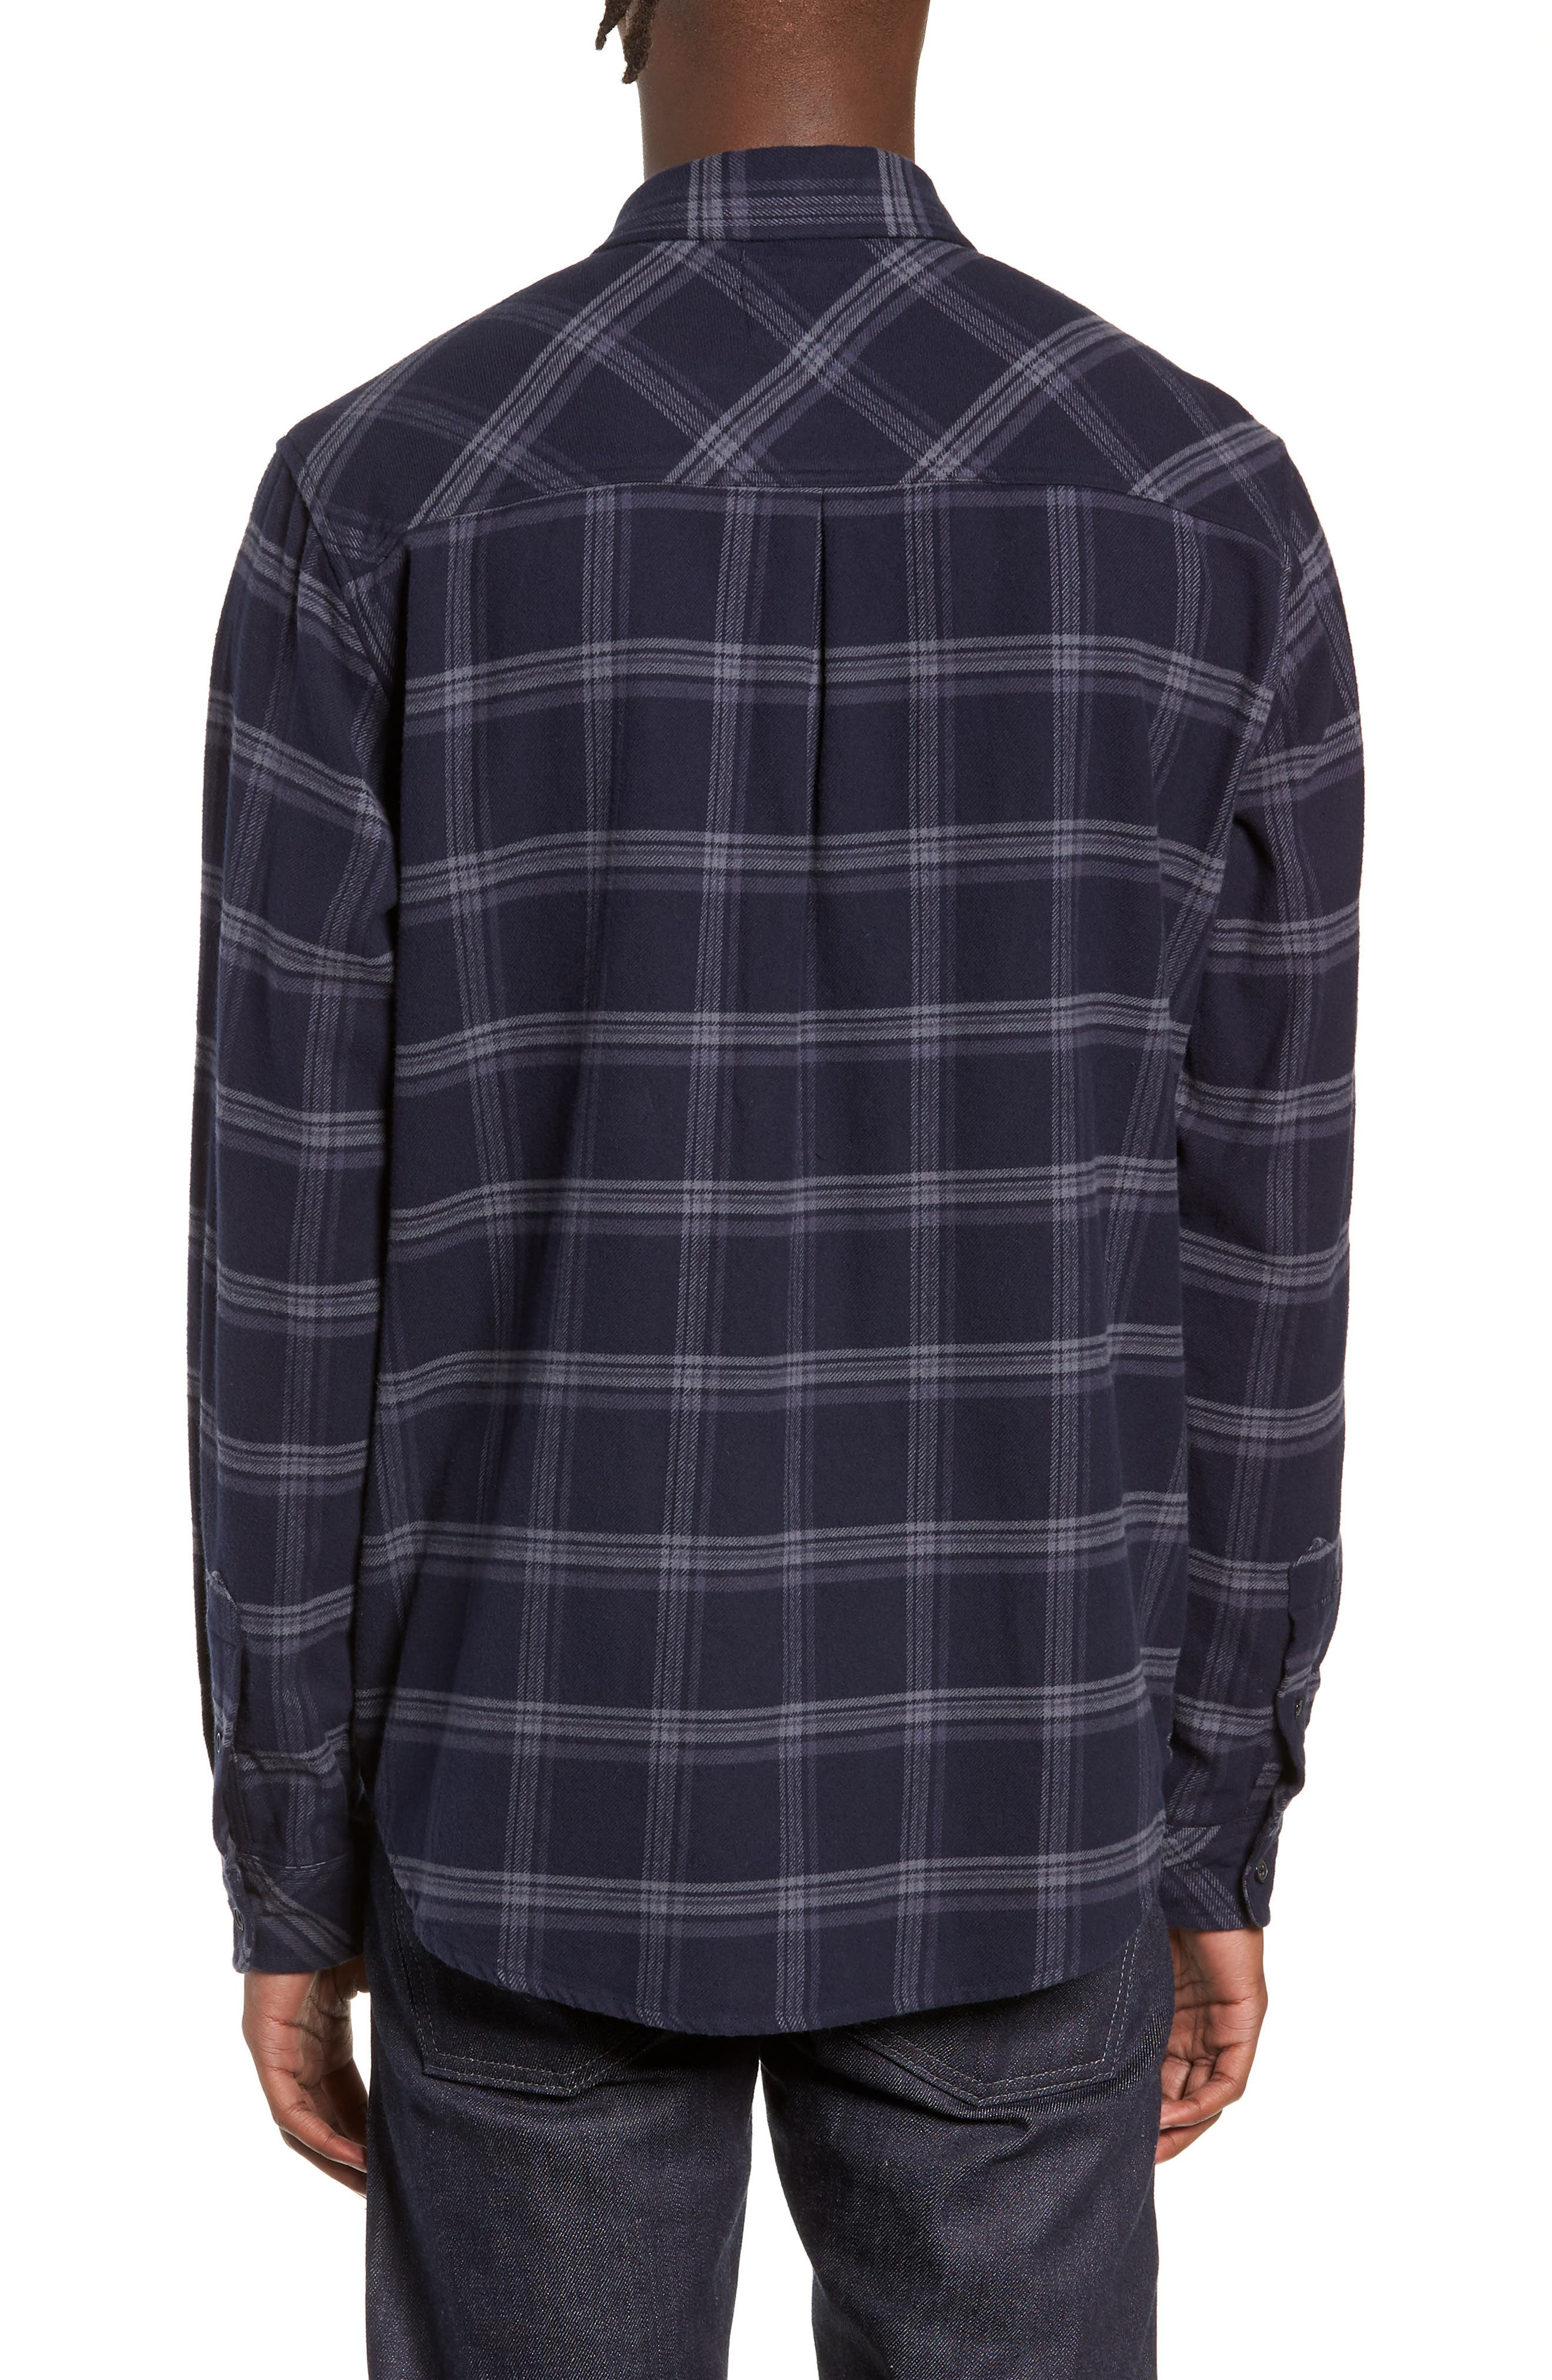 Forrest Slim Fit Plaid Flannel Sport Shirt,                             Alternate thumbnail 3, color,                             NAVY/HEATHERED CHARCOAL